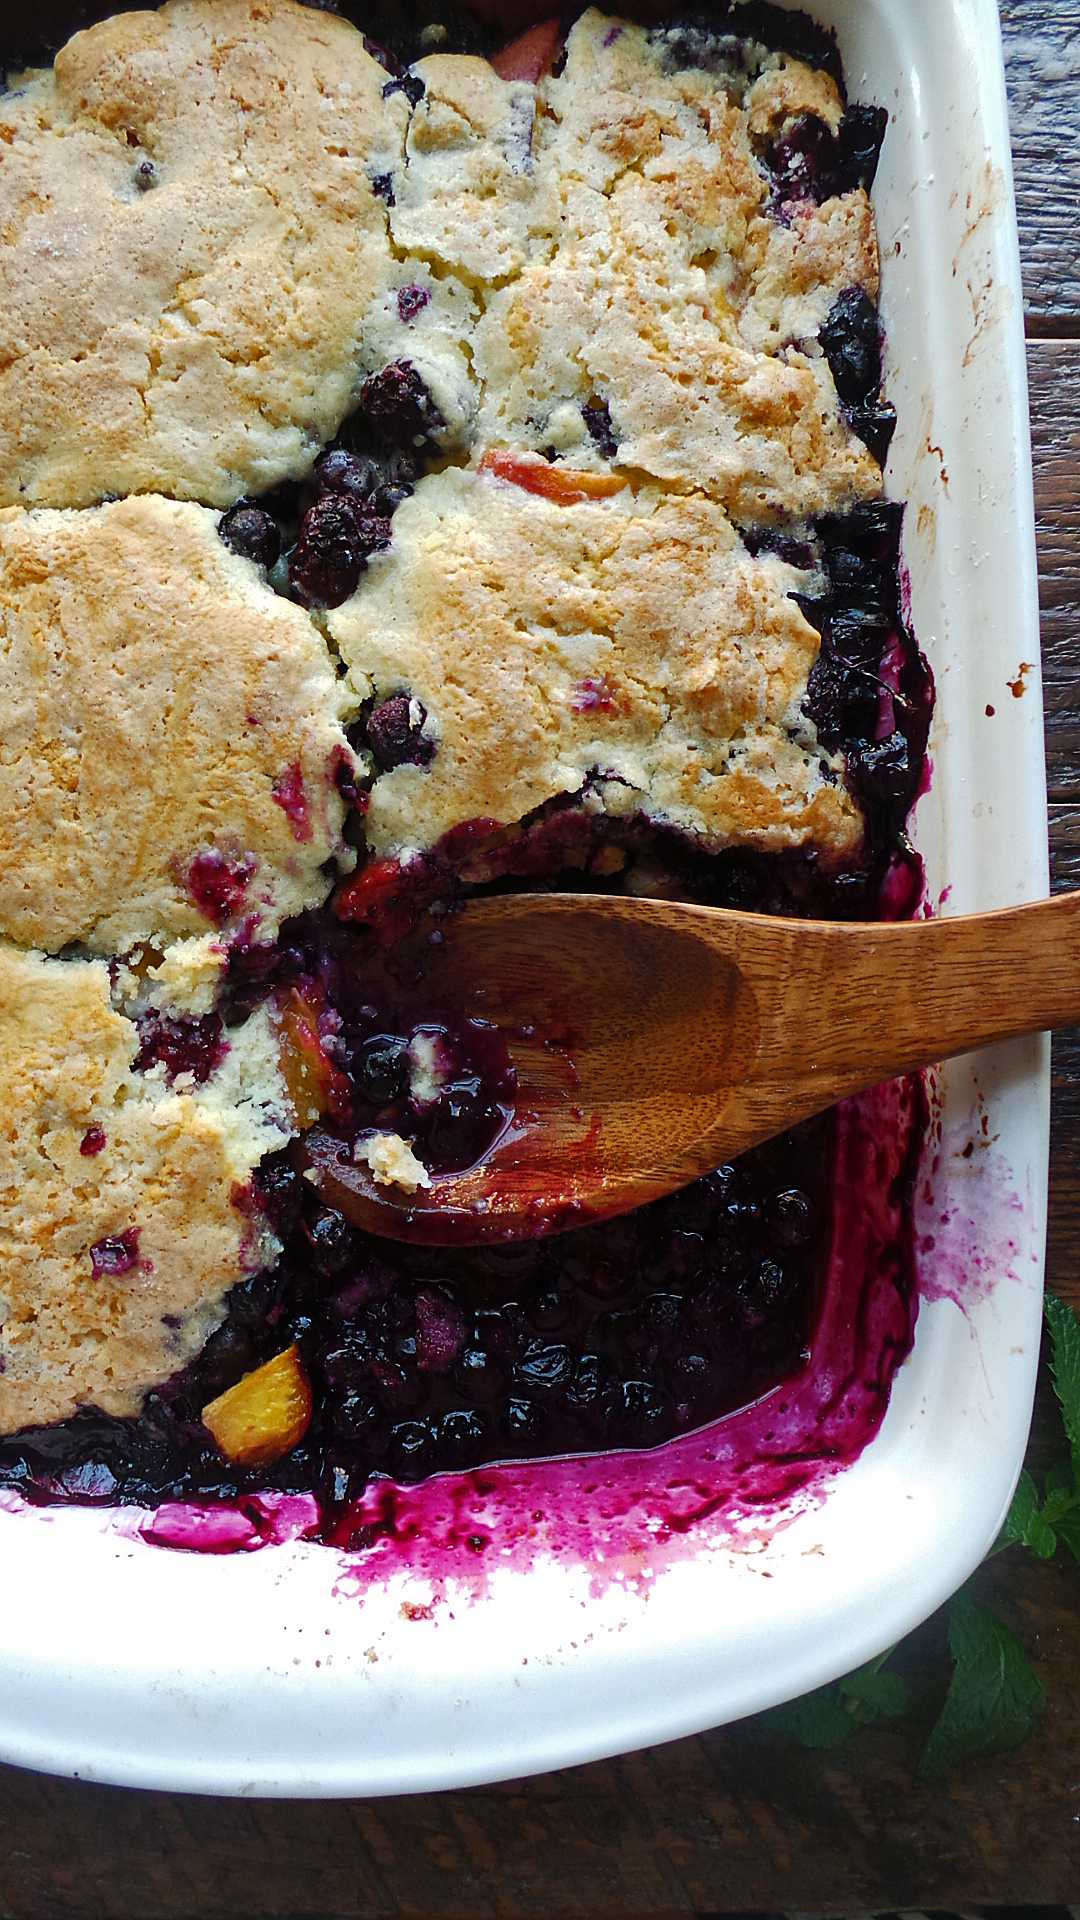 Blueberry and Peach Cobbler